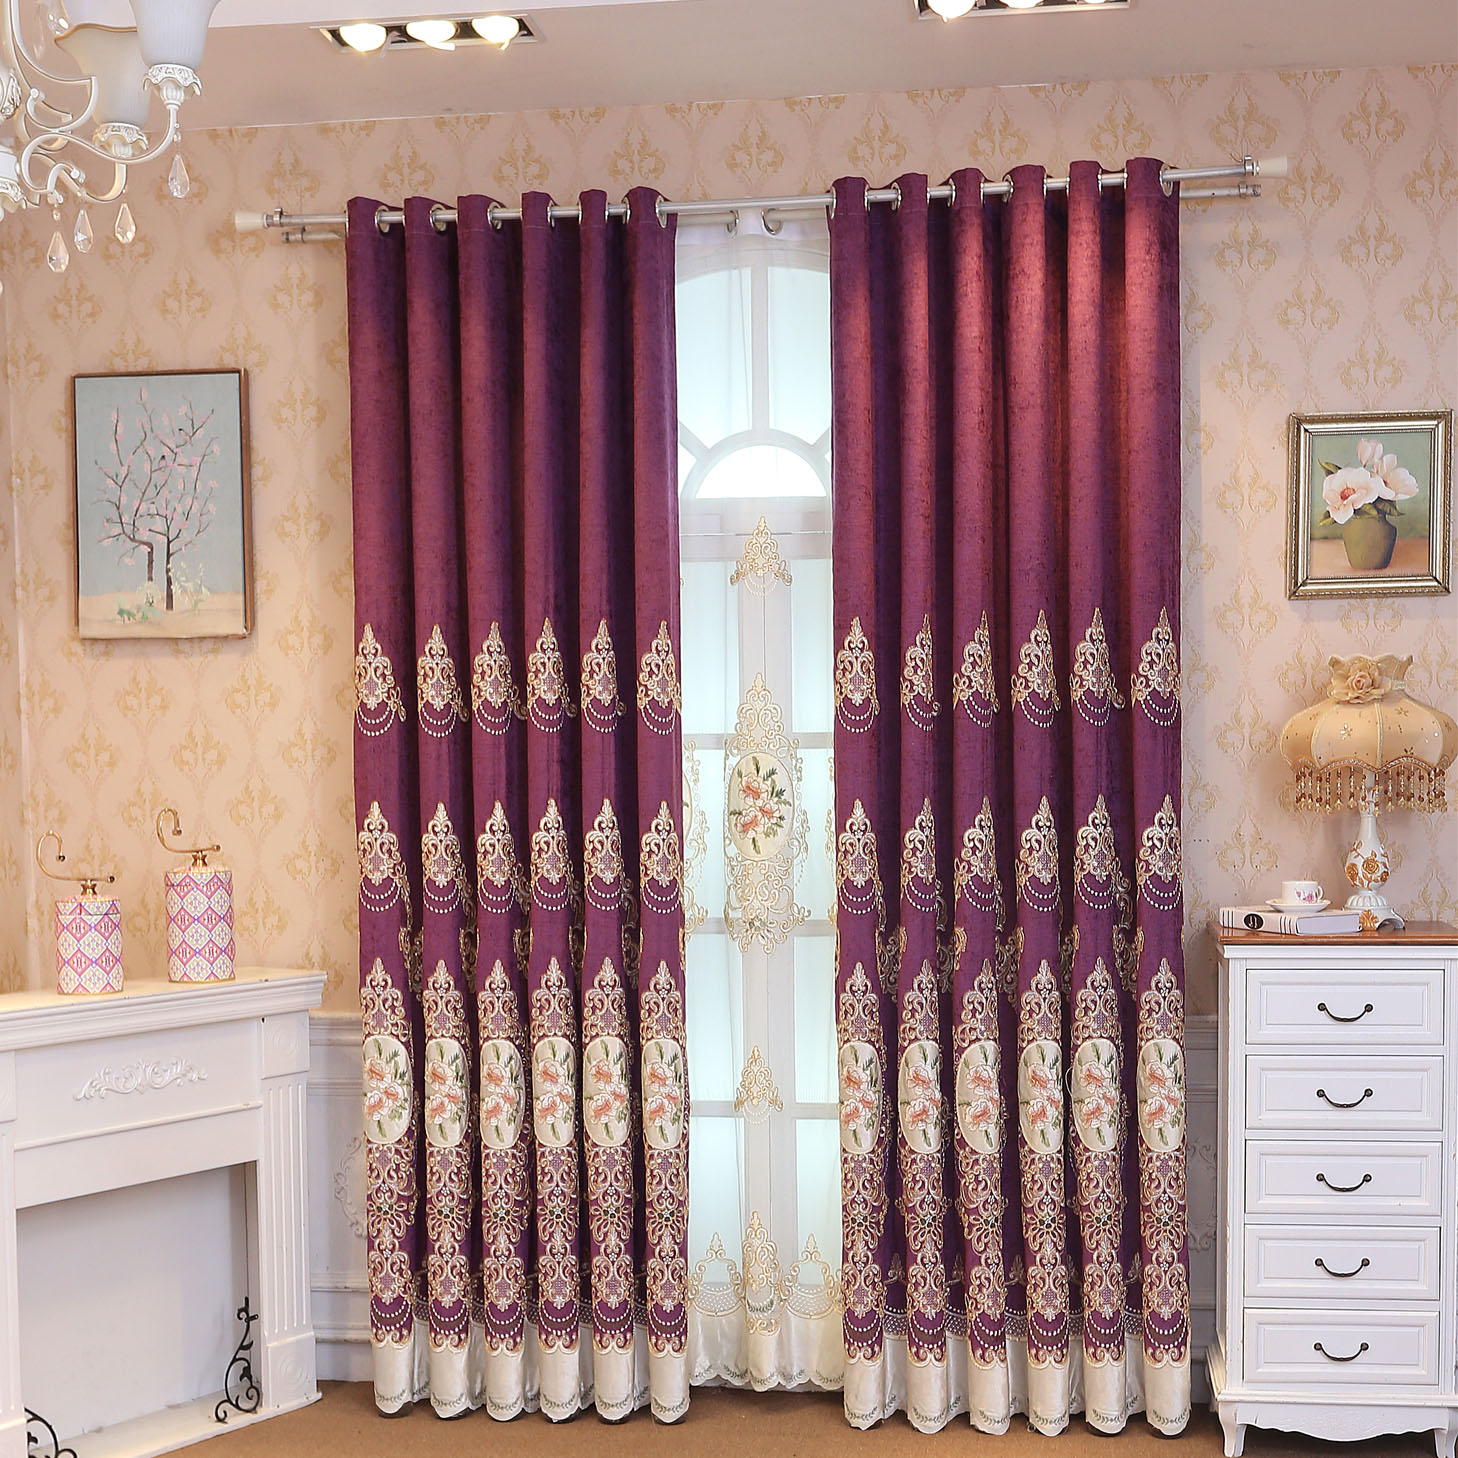 Slow soul europe coffee blue purple pinkfloral curtains - Blue and purple bedroom curtains ...